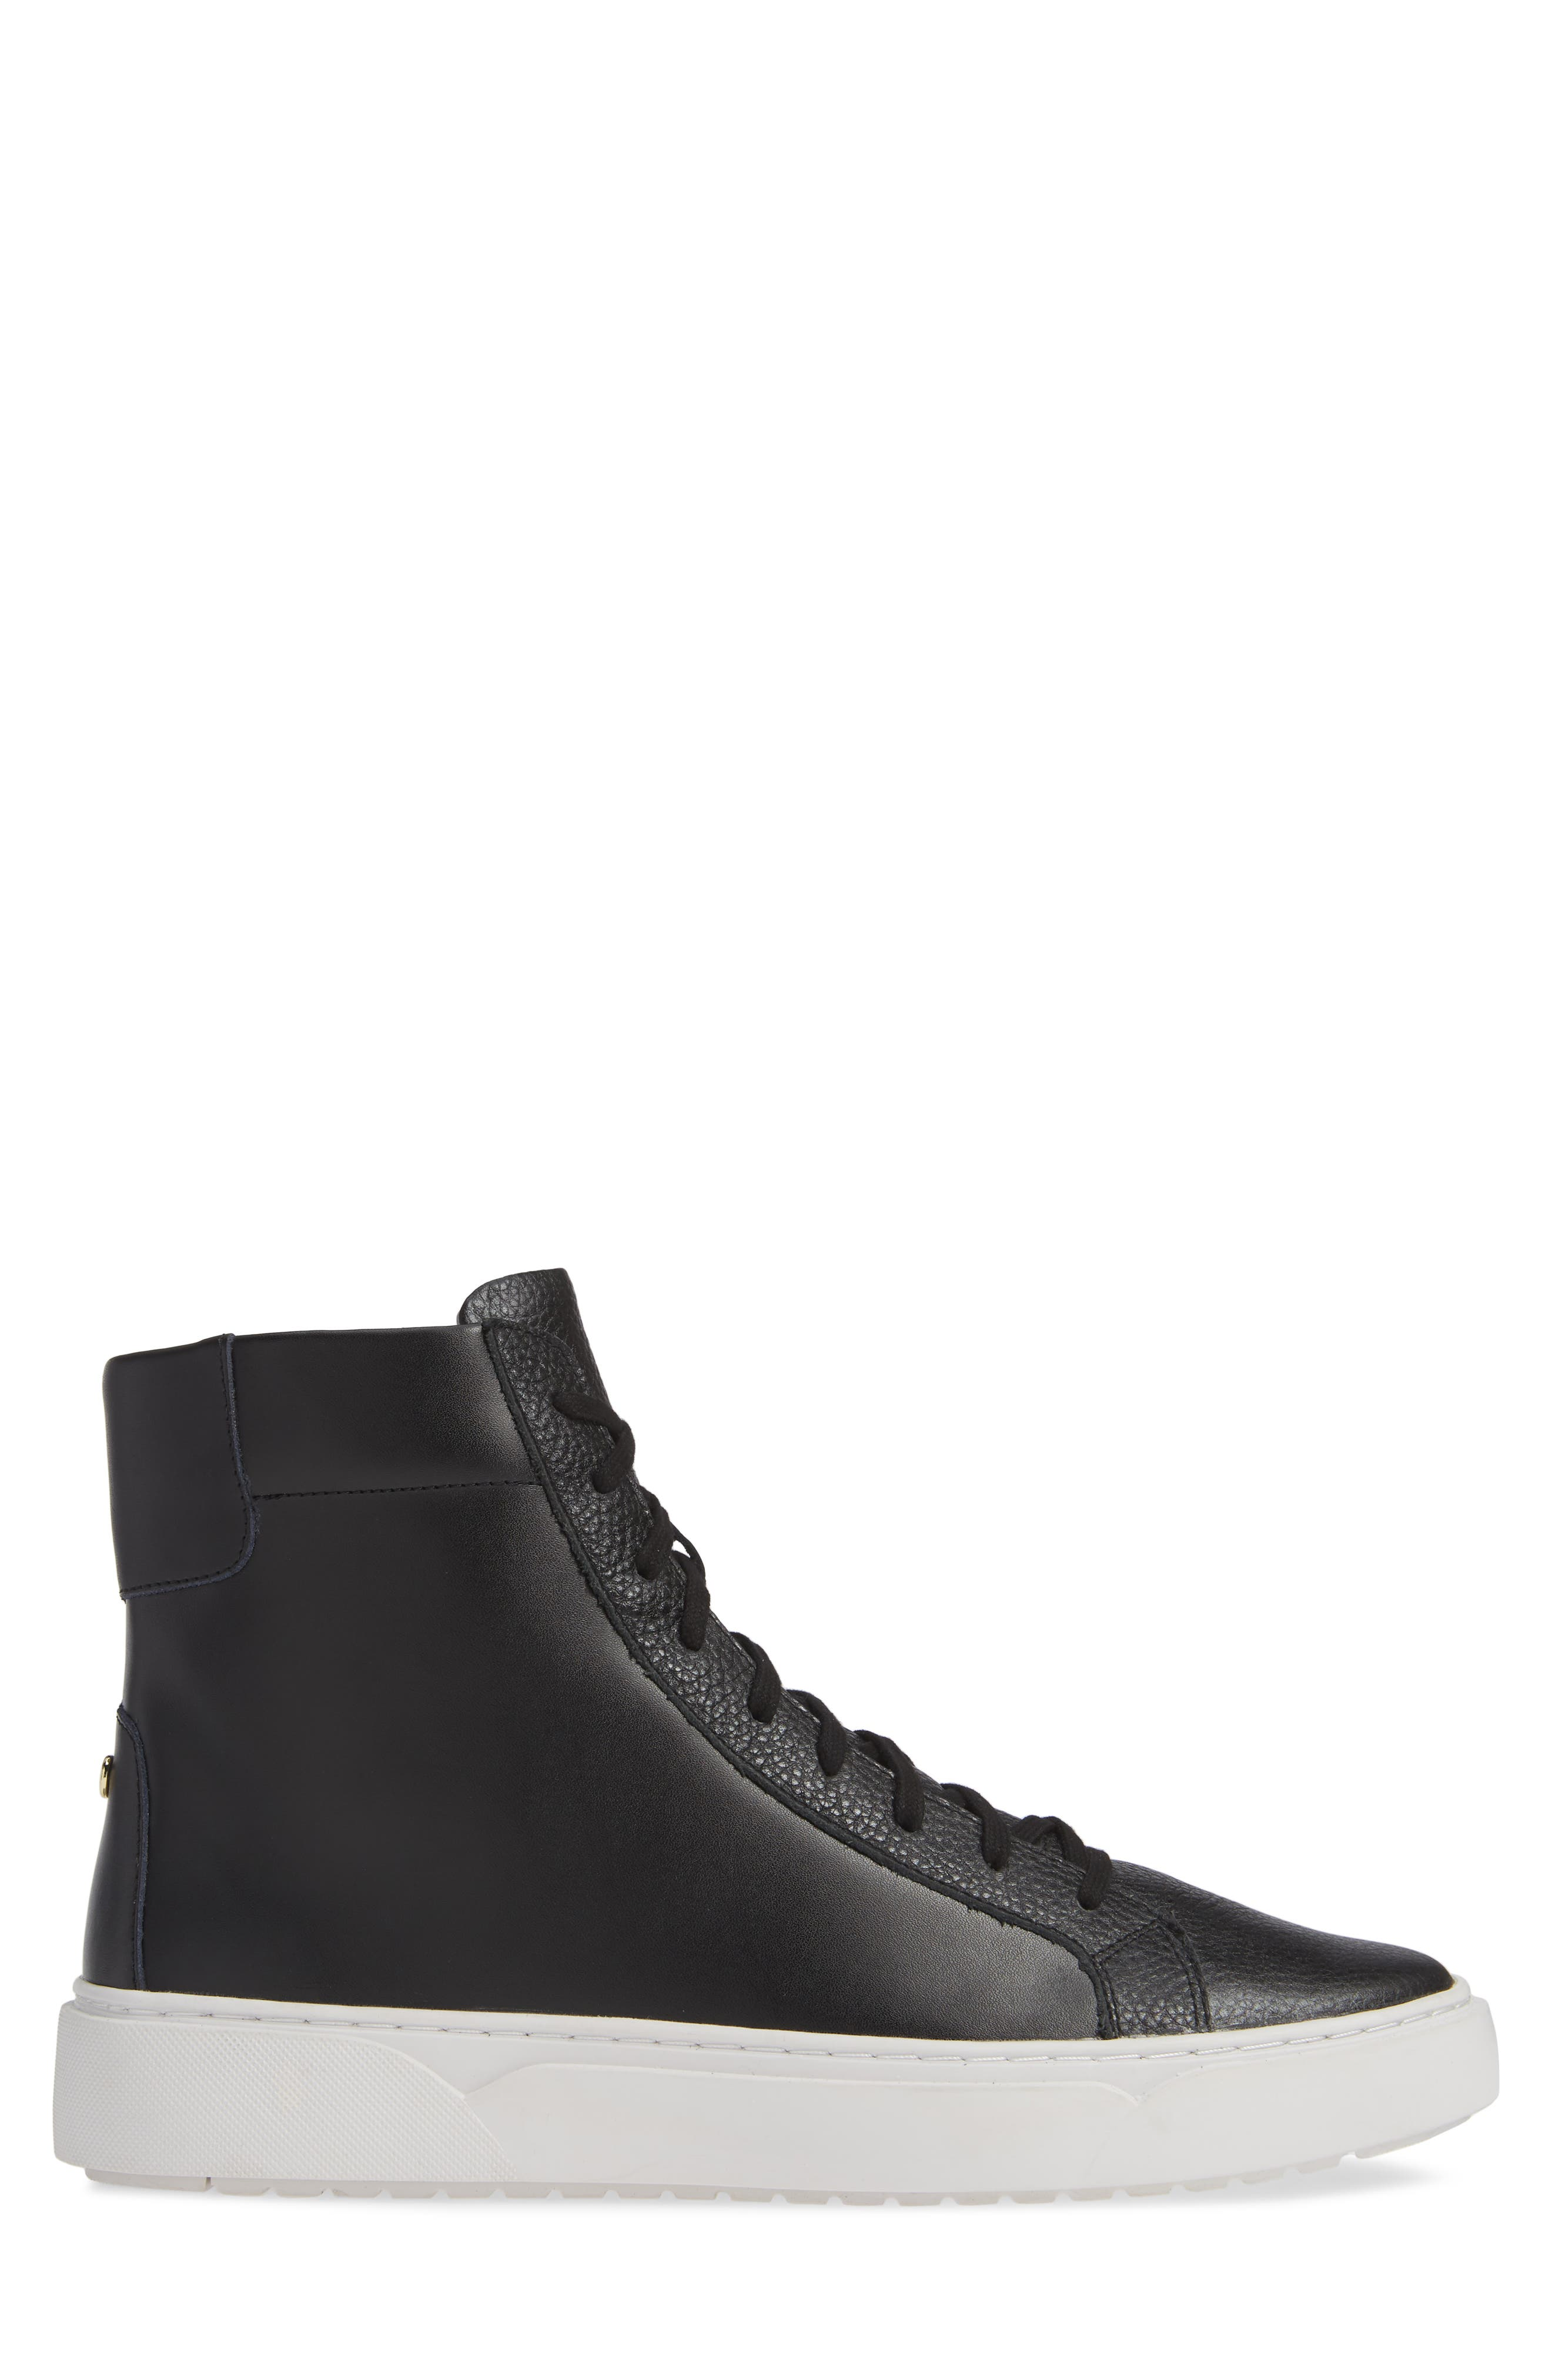 Logan High Top Sneaker,                             Alternate thumbnail 3, color,                             HIGHLAND LEATHER